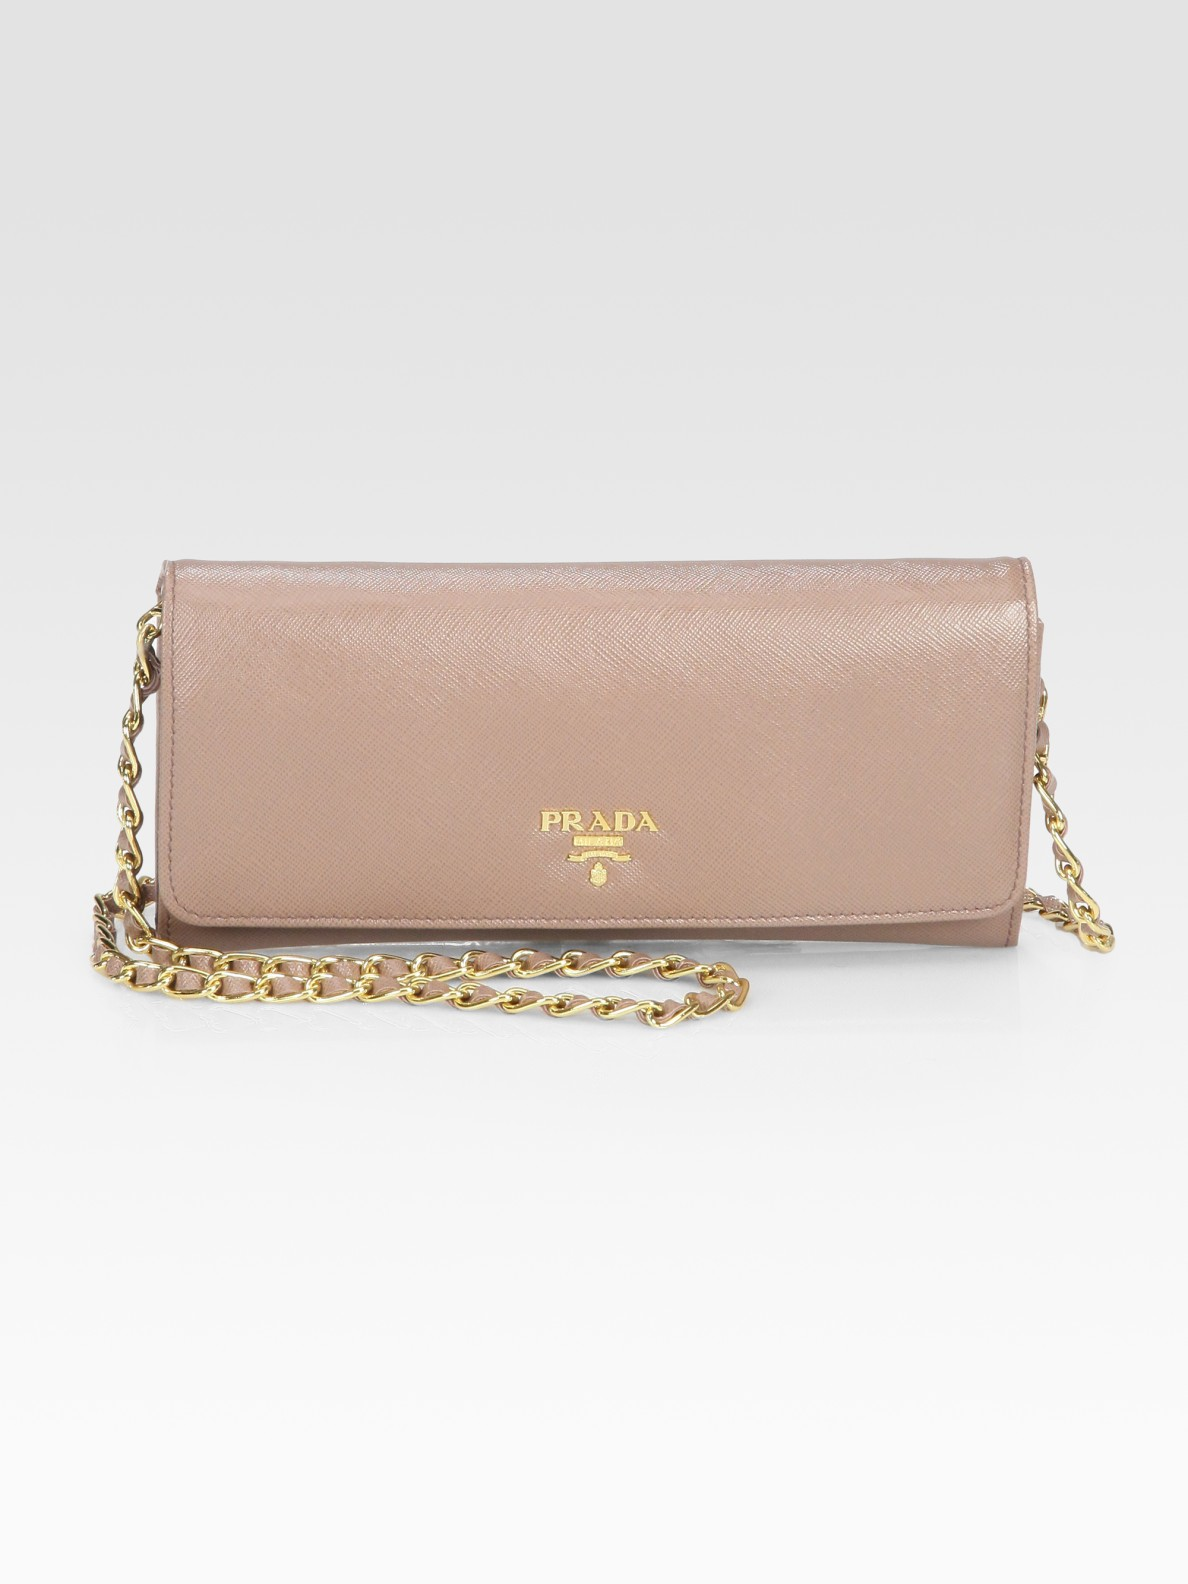 346b546672d2 shopping prada saffiano chain crossbody wallet e50cb 8853d; where can i buy  lyst prada saffiano metal oro wallet with chain in natural 5270c 8df9d